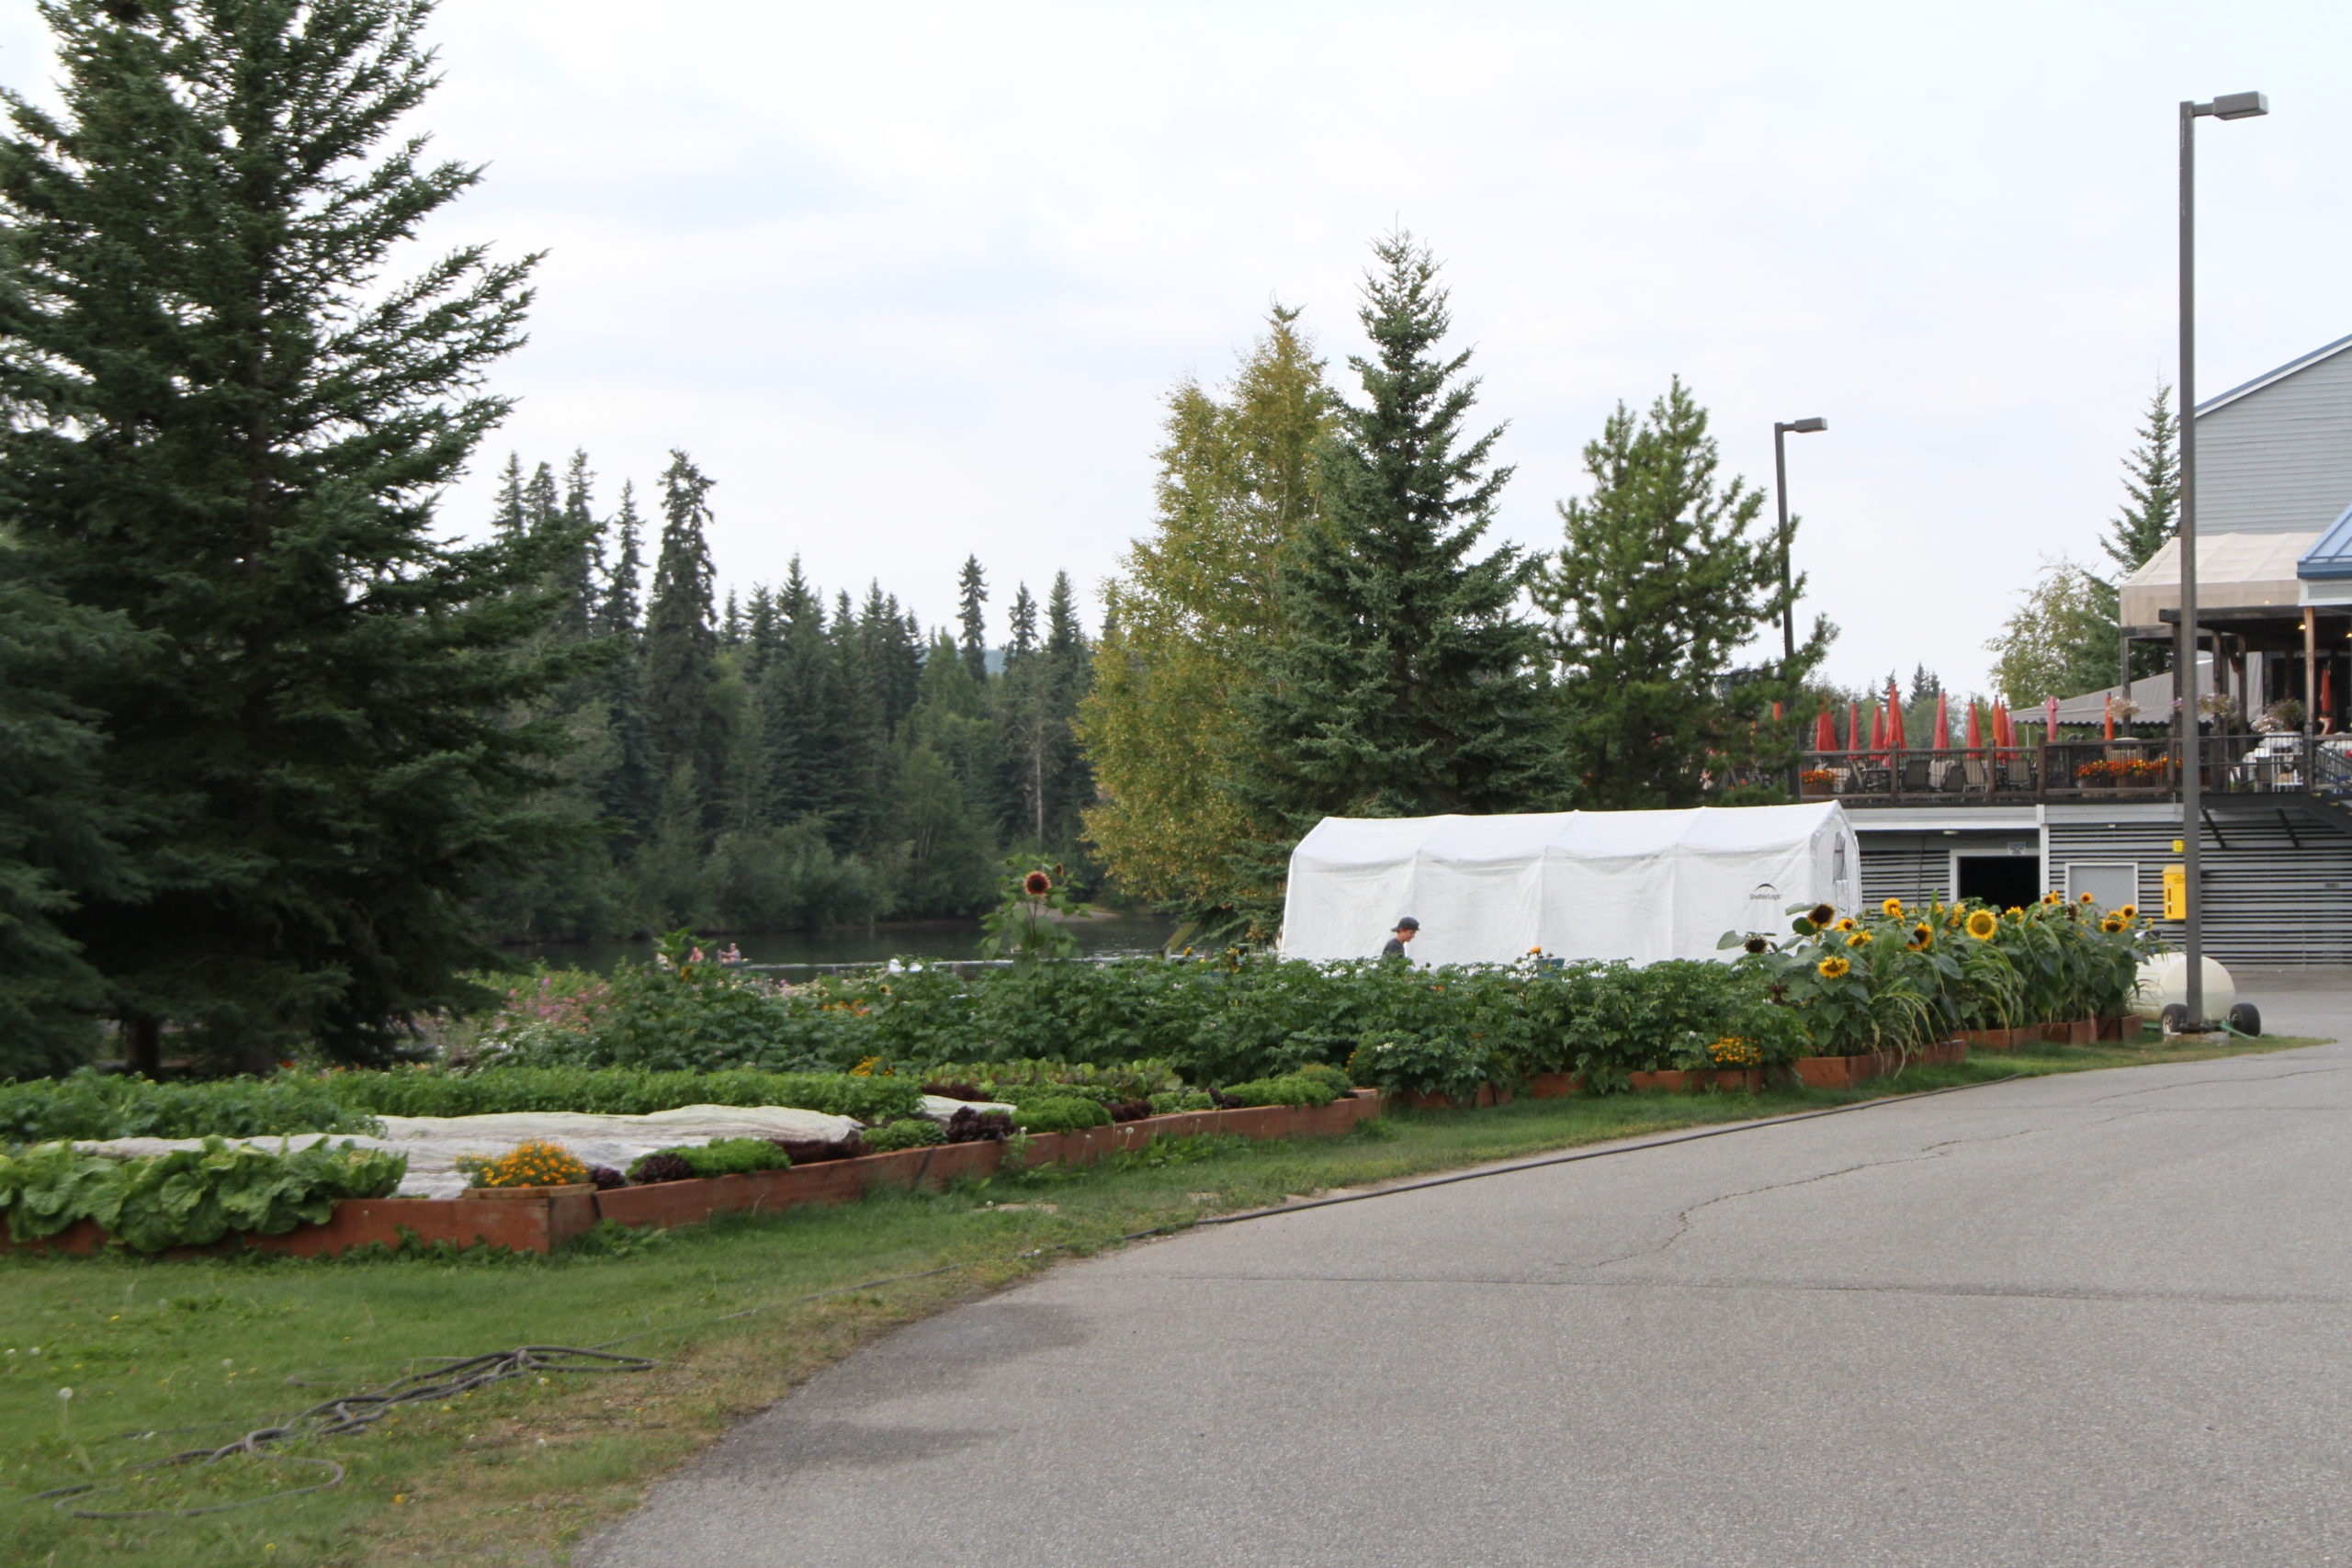 A view of the gardens adjacent to the outdoor dining deck at the Fairbanks Princess Lodge.